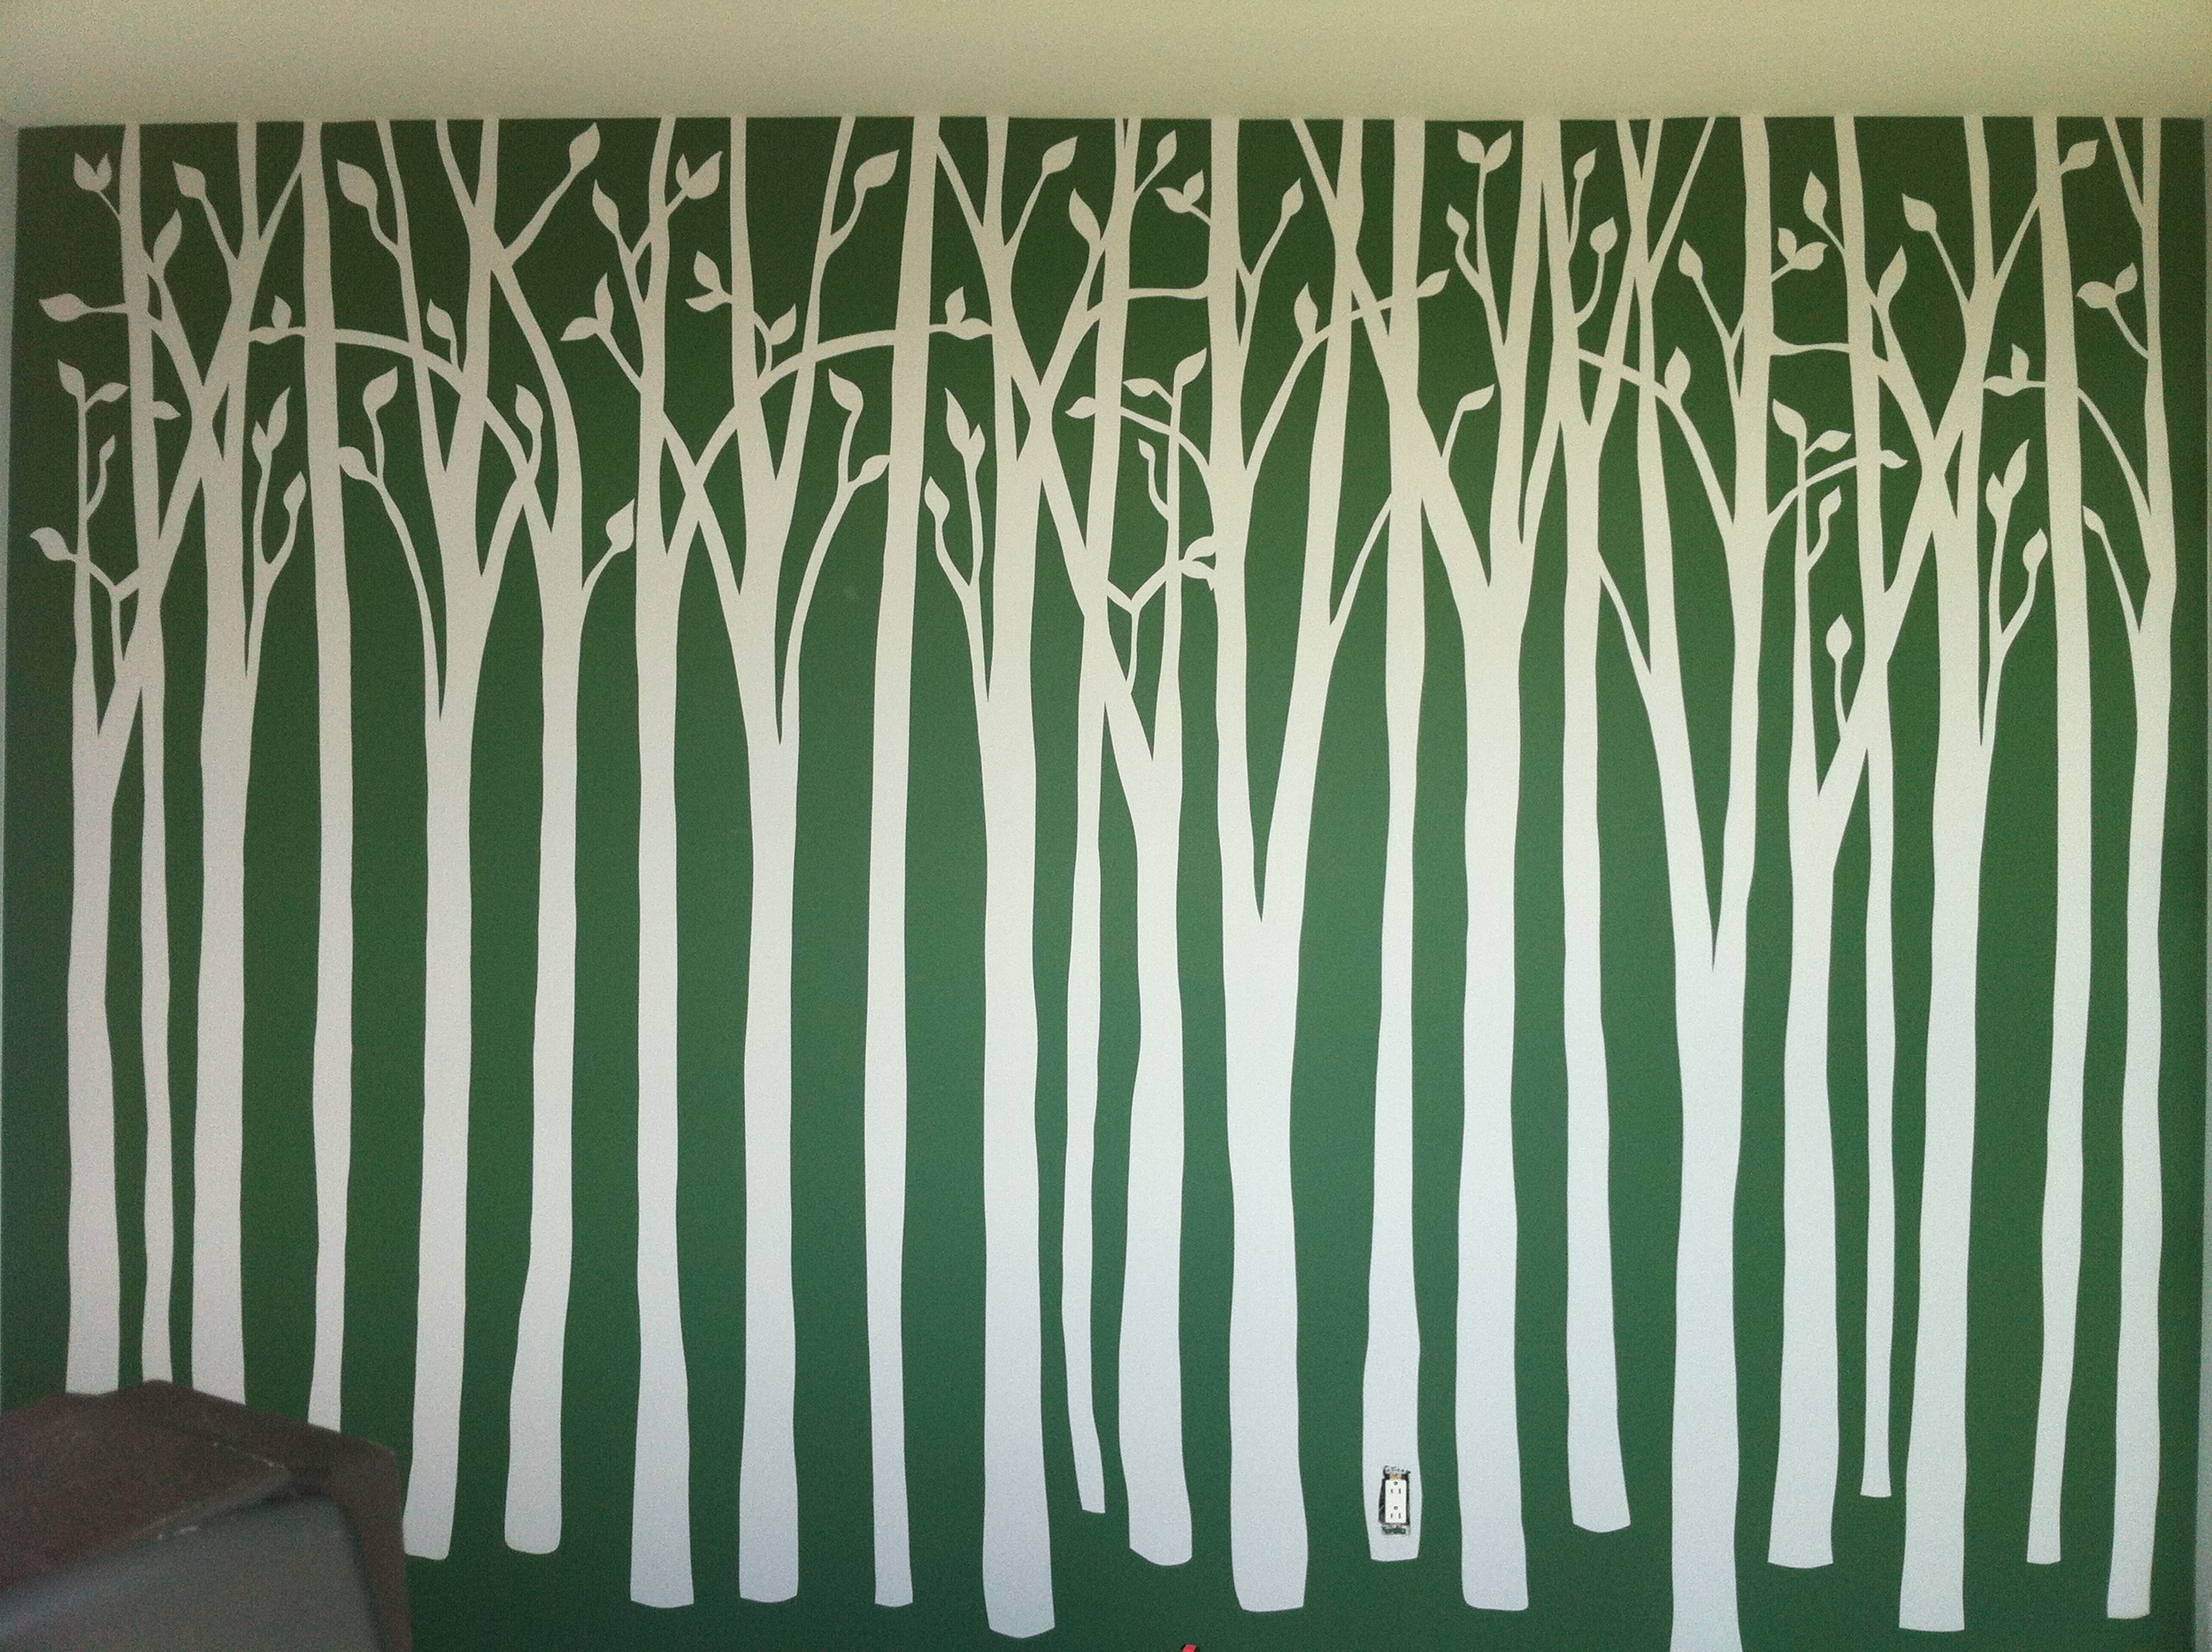 A wall of trees...